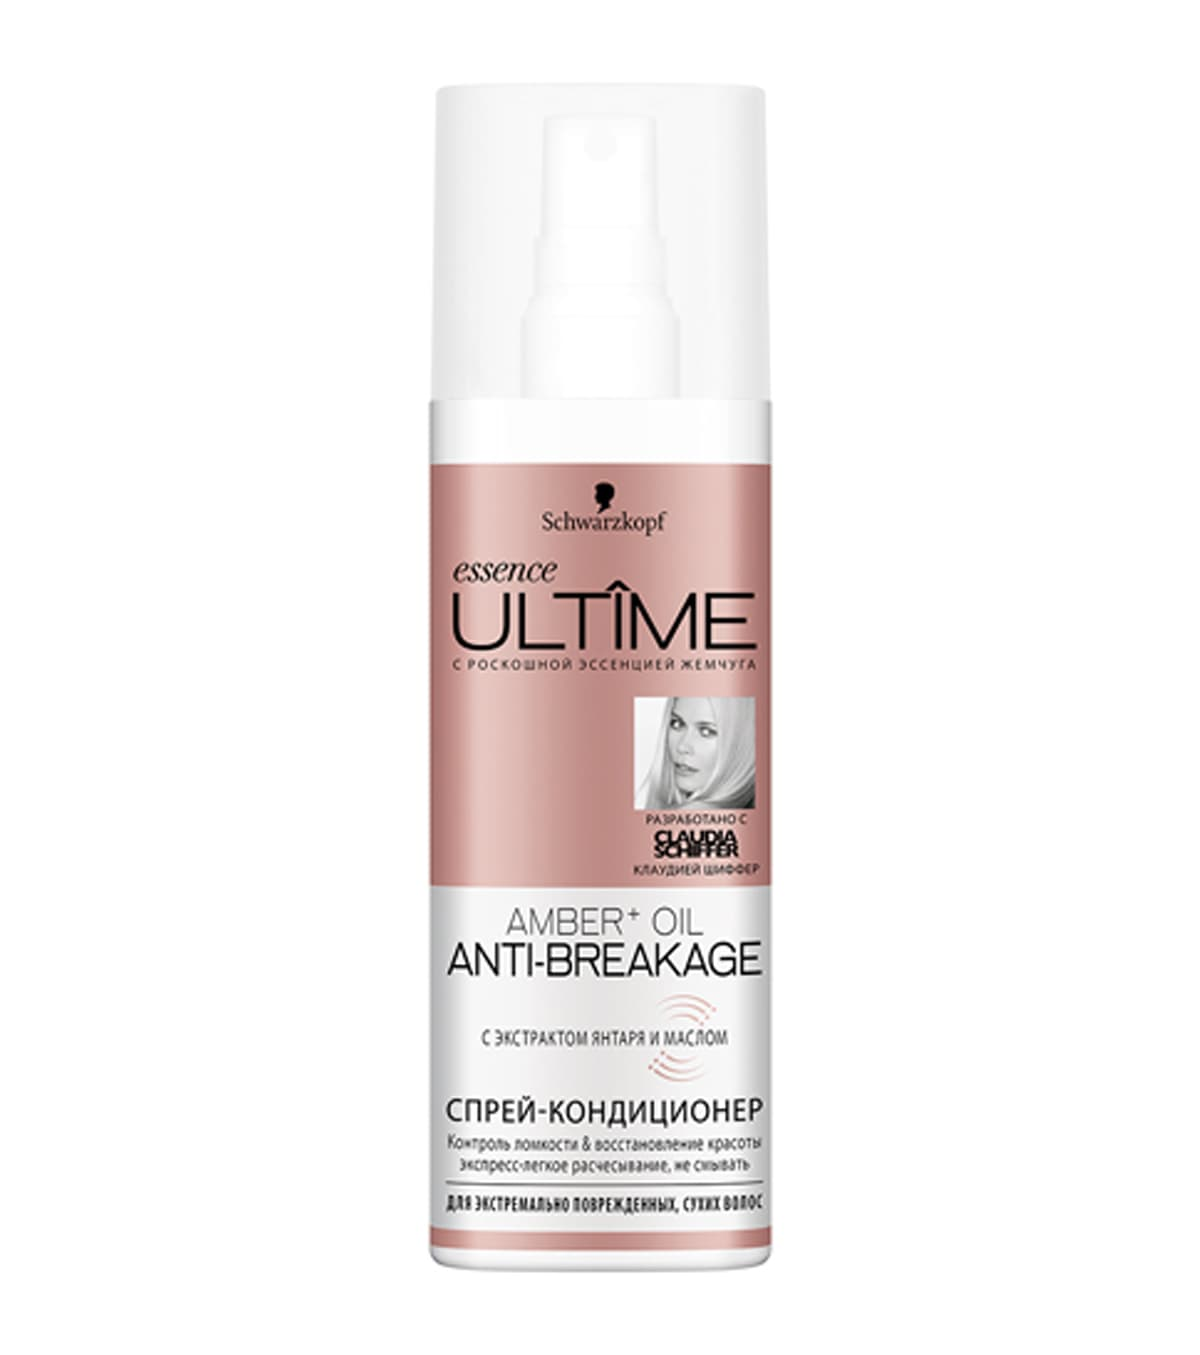 Schwarzkopf Essence Ultime Amber Oil Спрей-Кондиционер